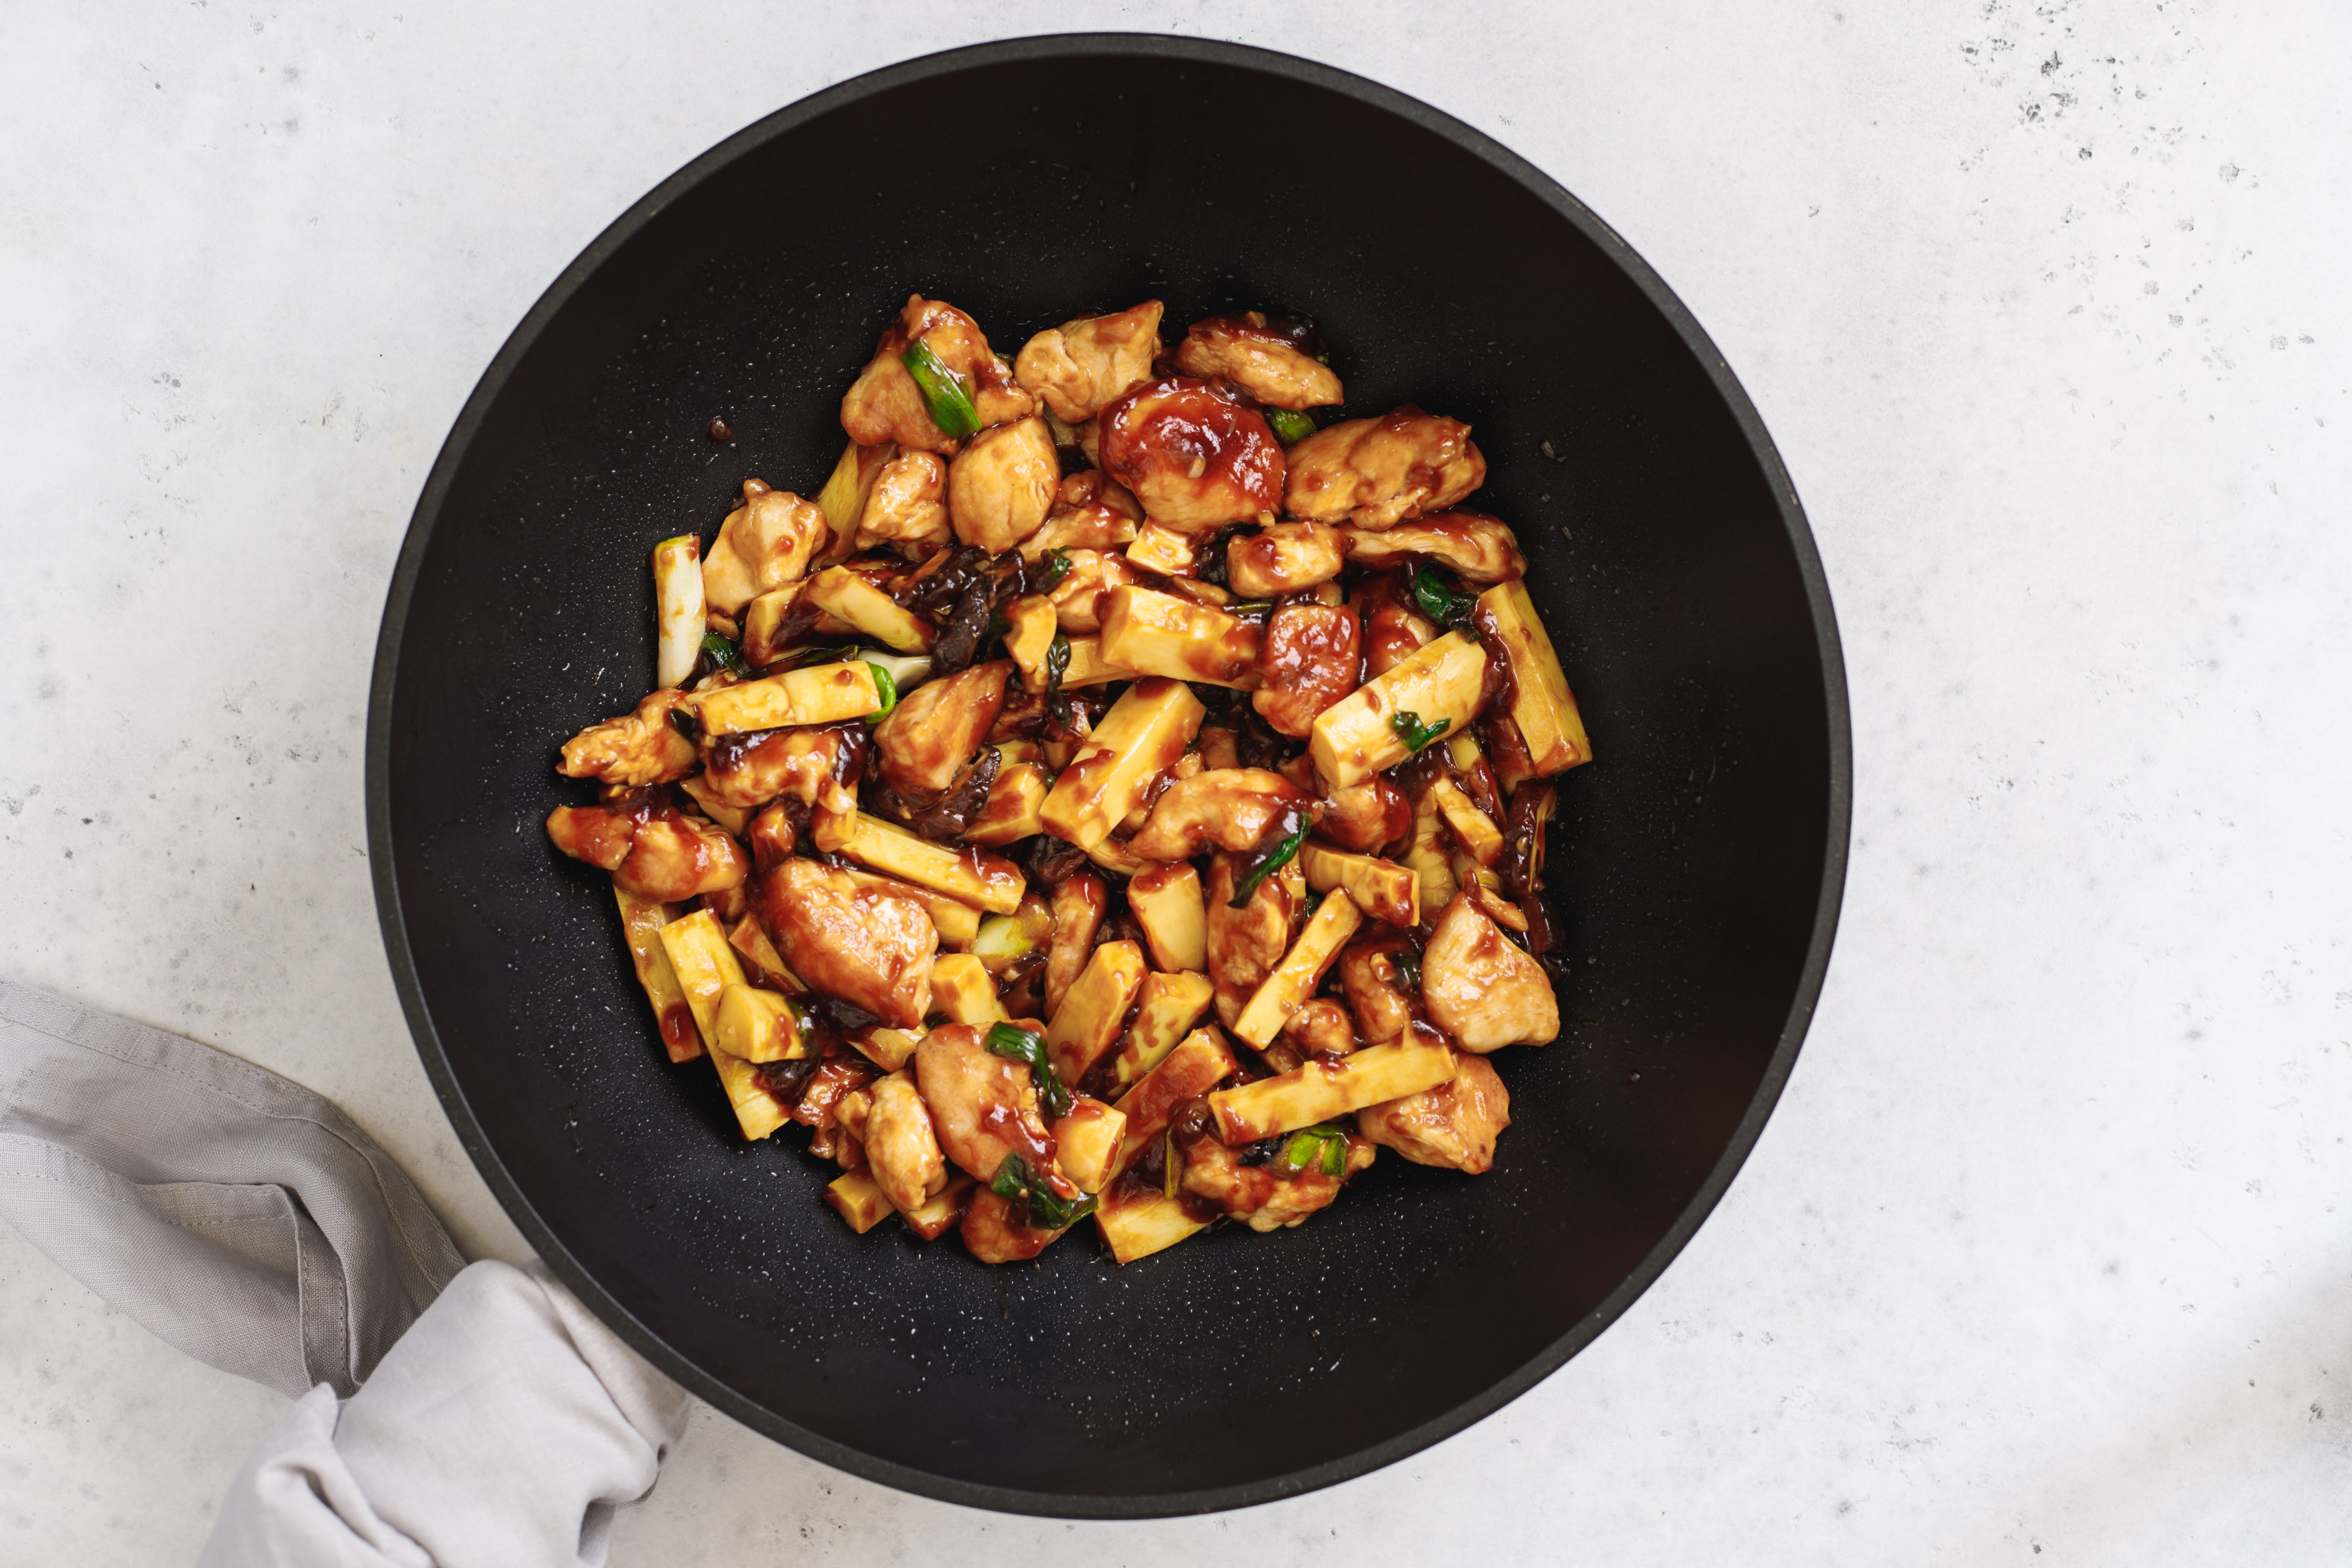 Chicken in oyster sauce finished recipe